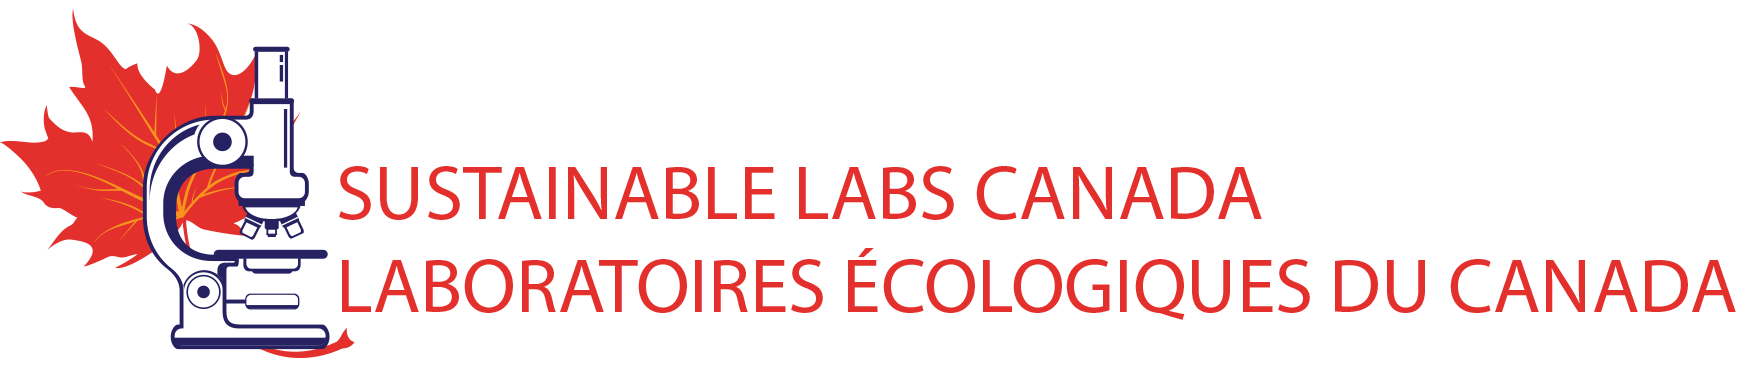 Sustainable Labs Canada